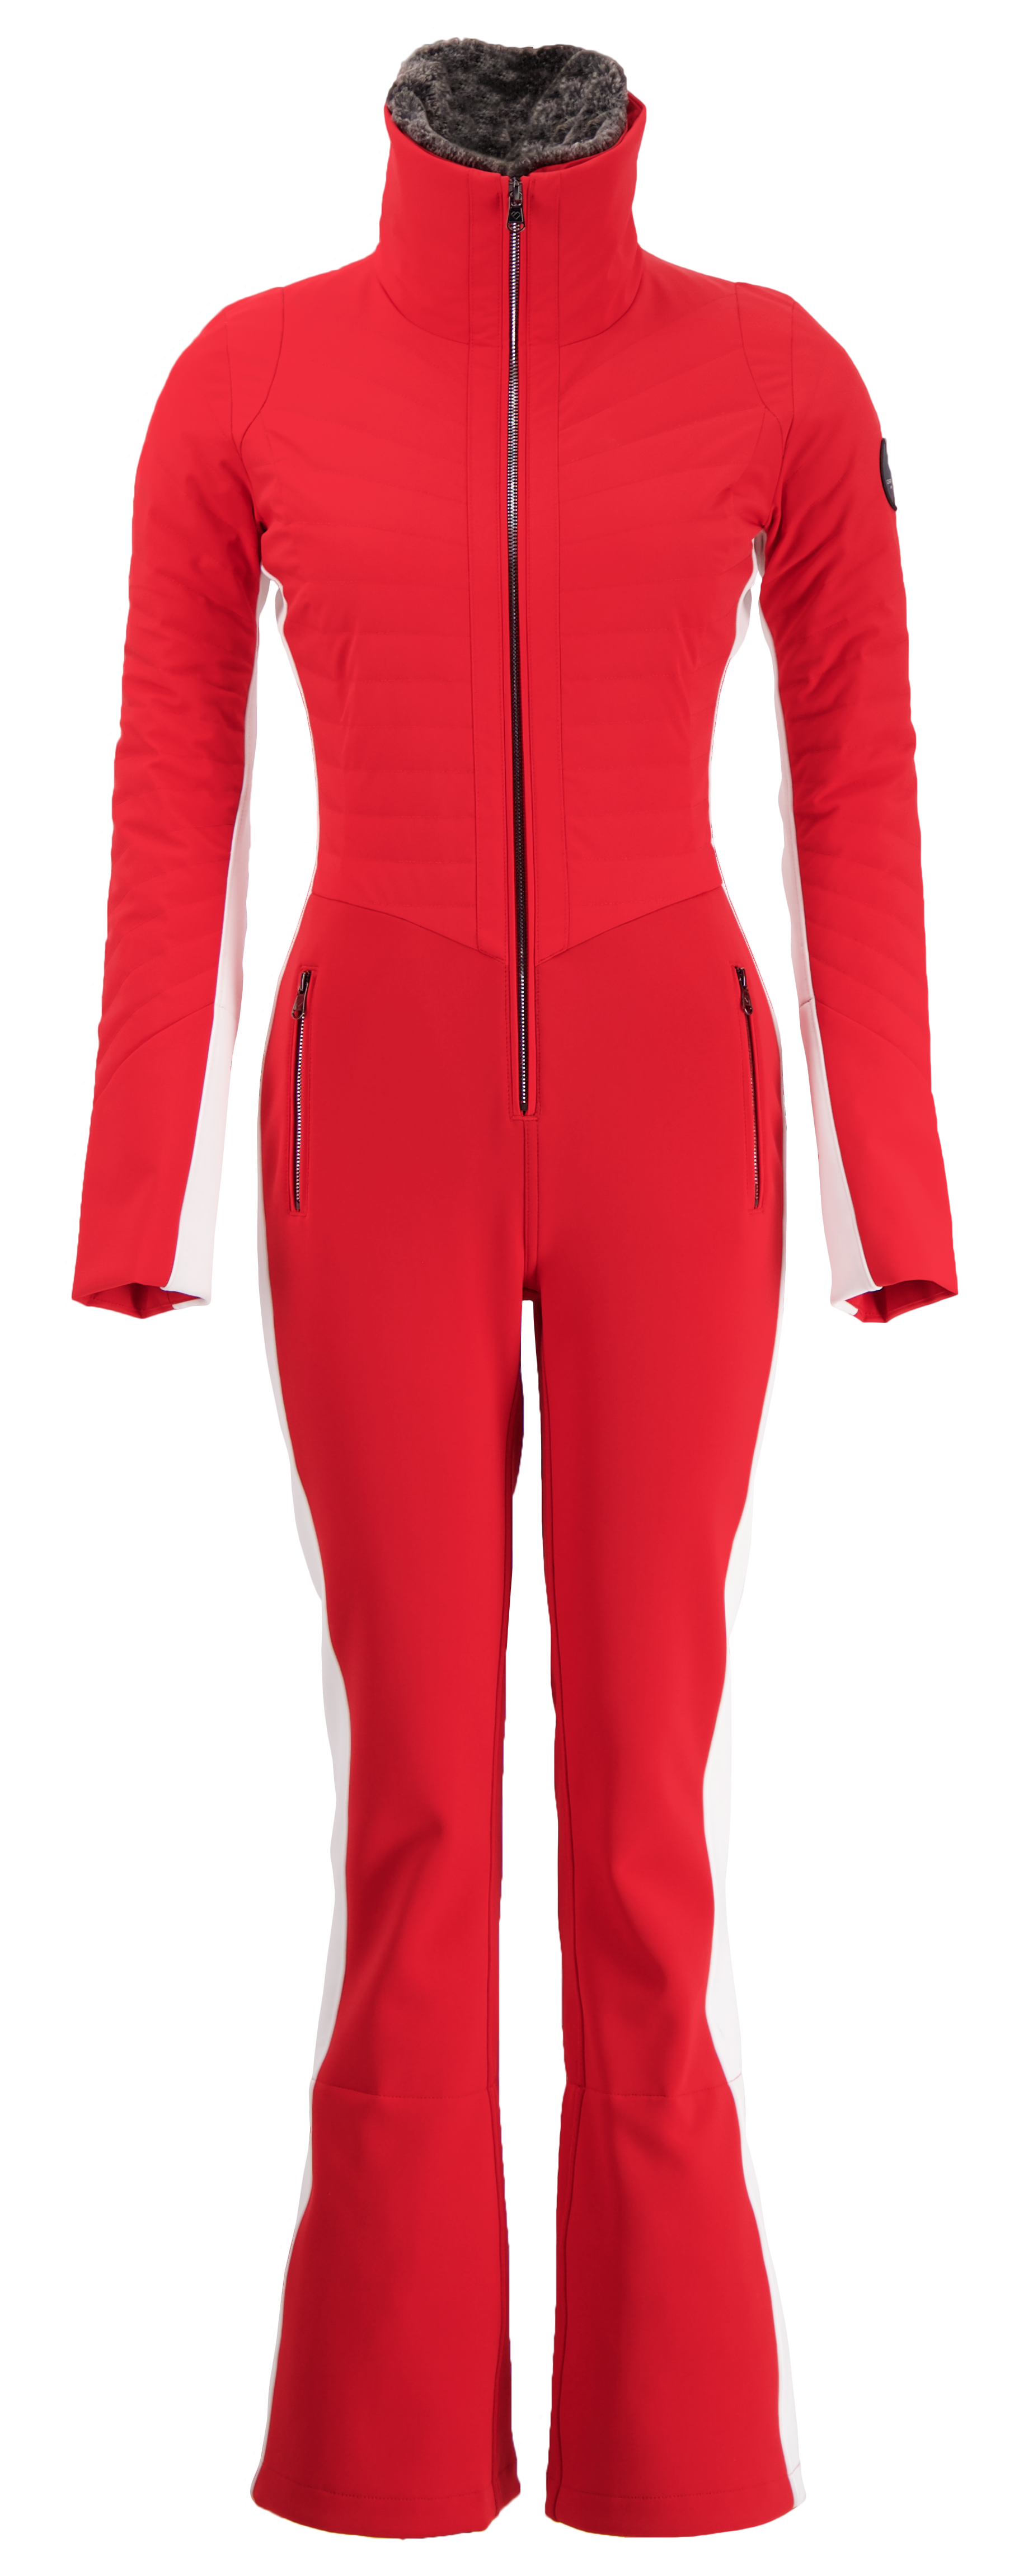 Atomic Cloud 7 2009-2010 Women's Ski